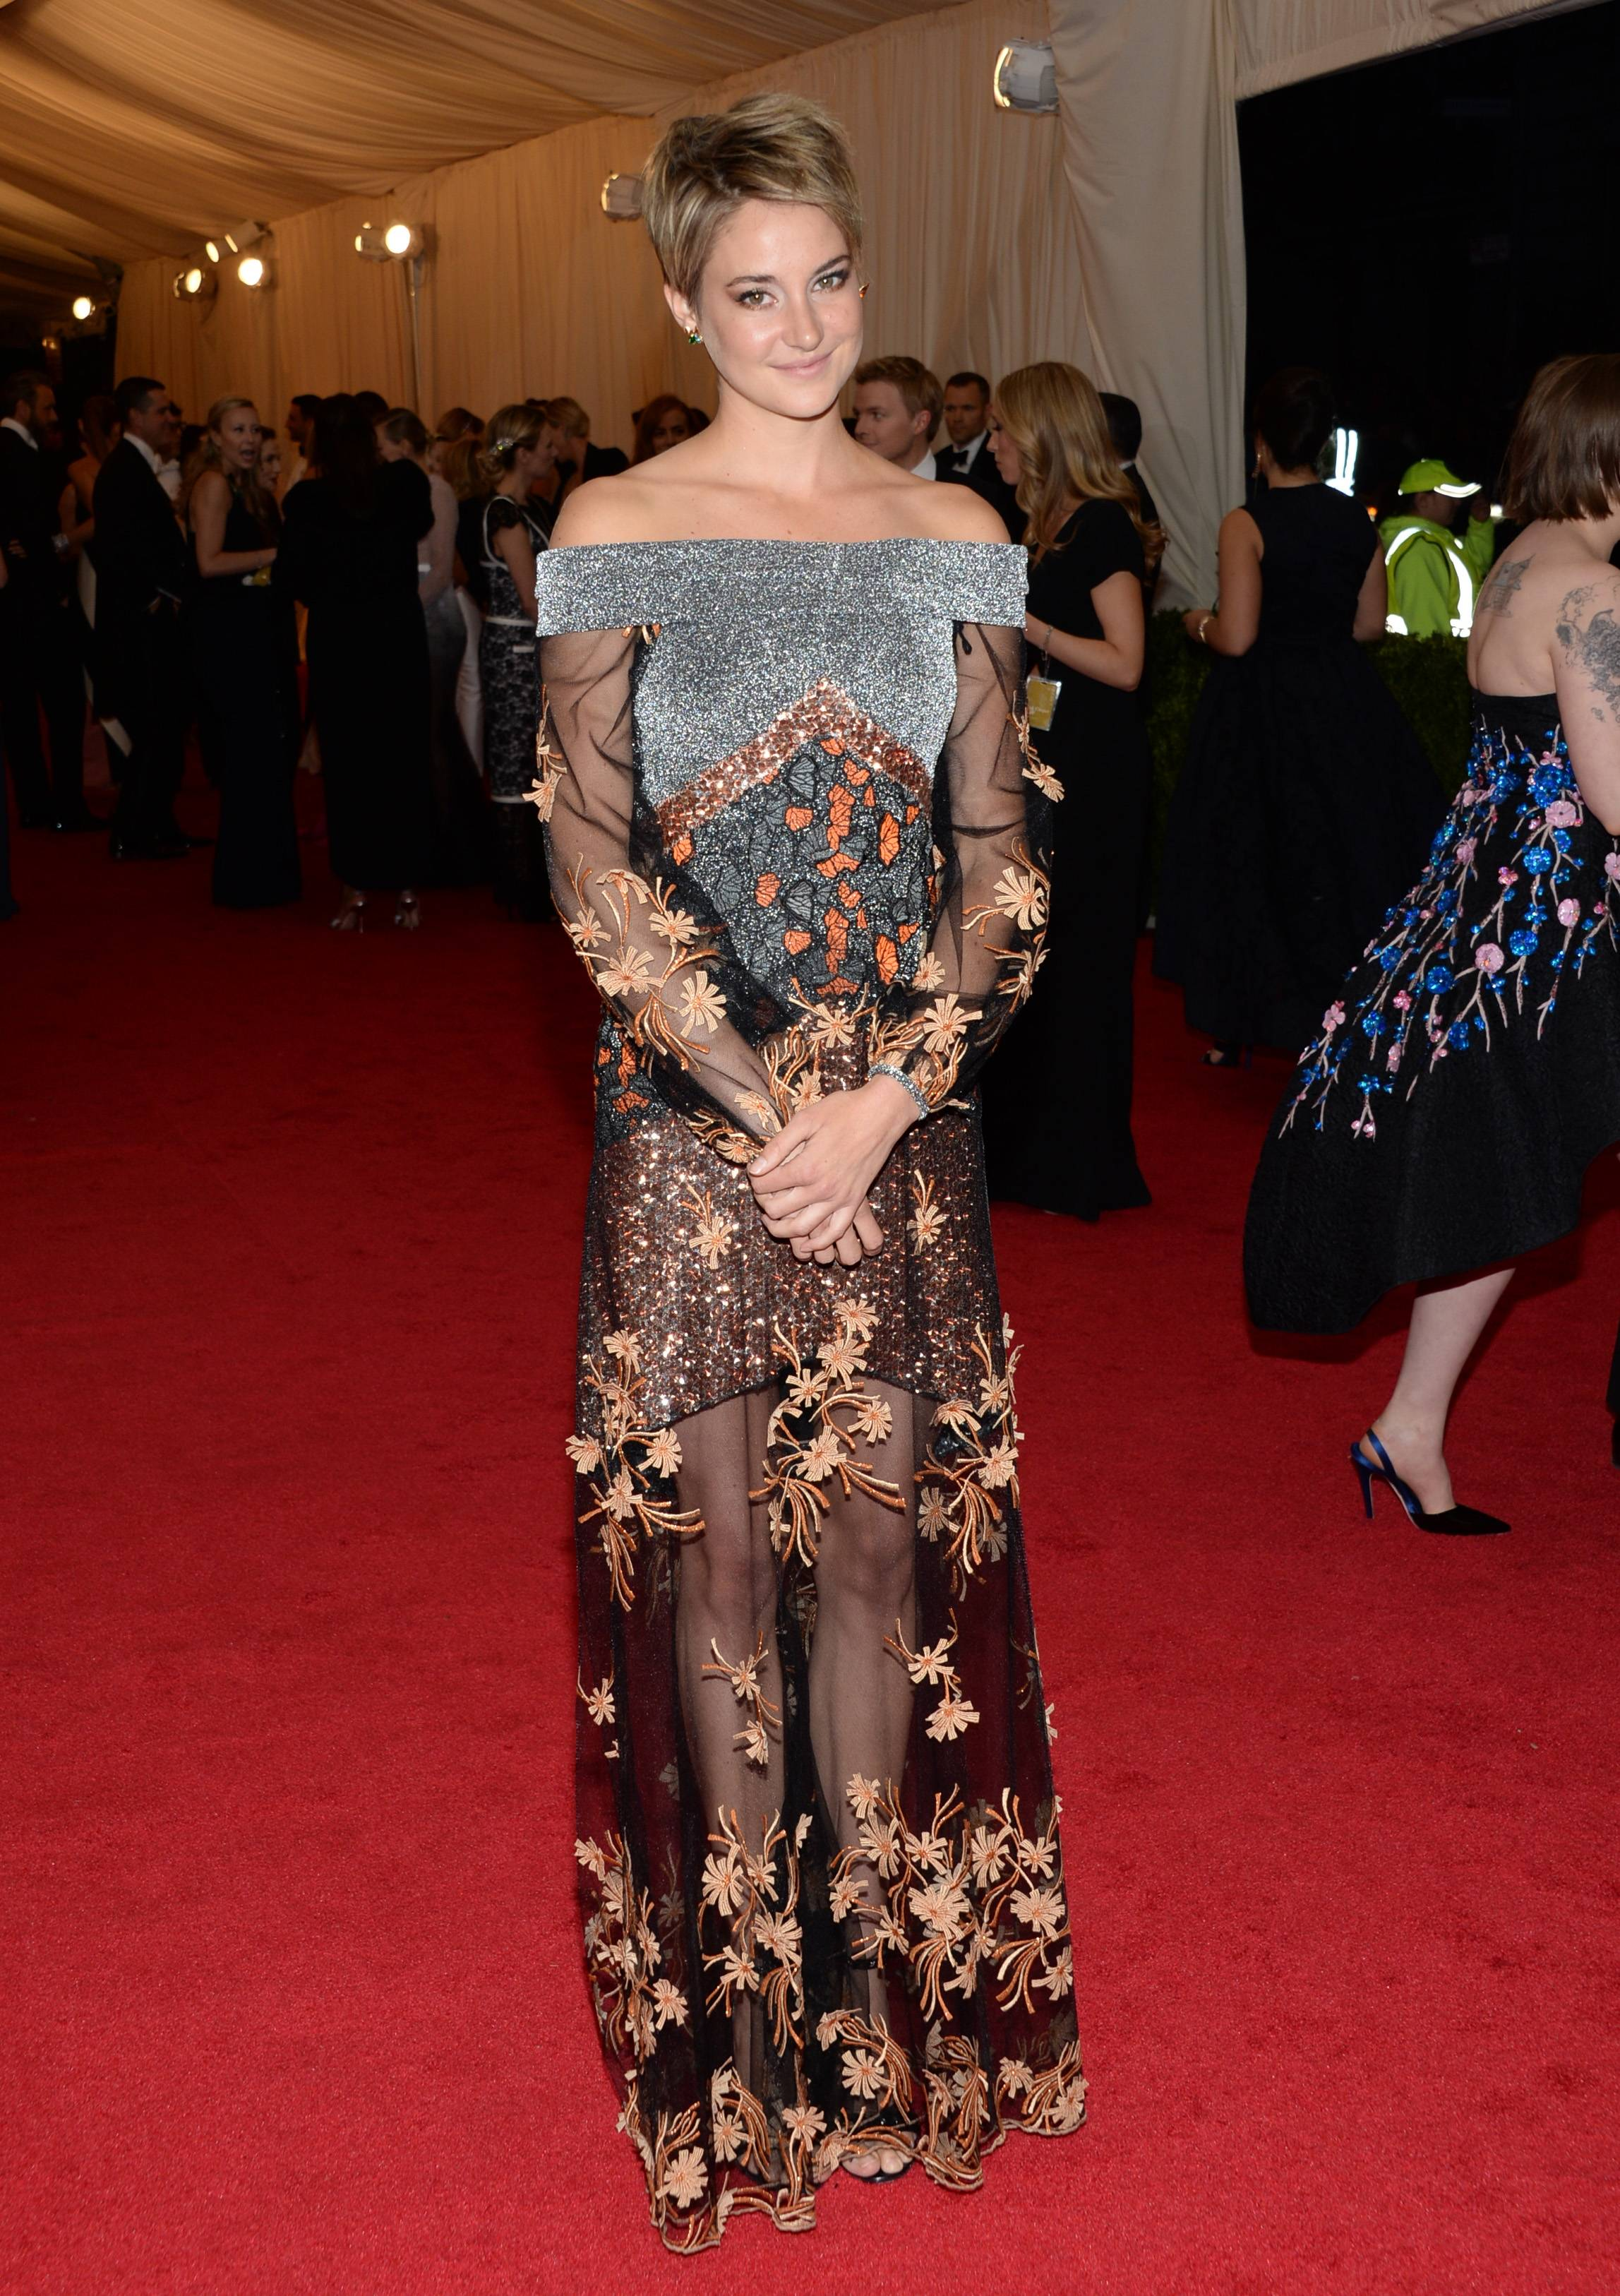 Shailene Woodley attends The Metropolitan Museum of Art's Costume Institute benefit gala Monday.